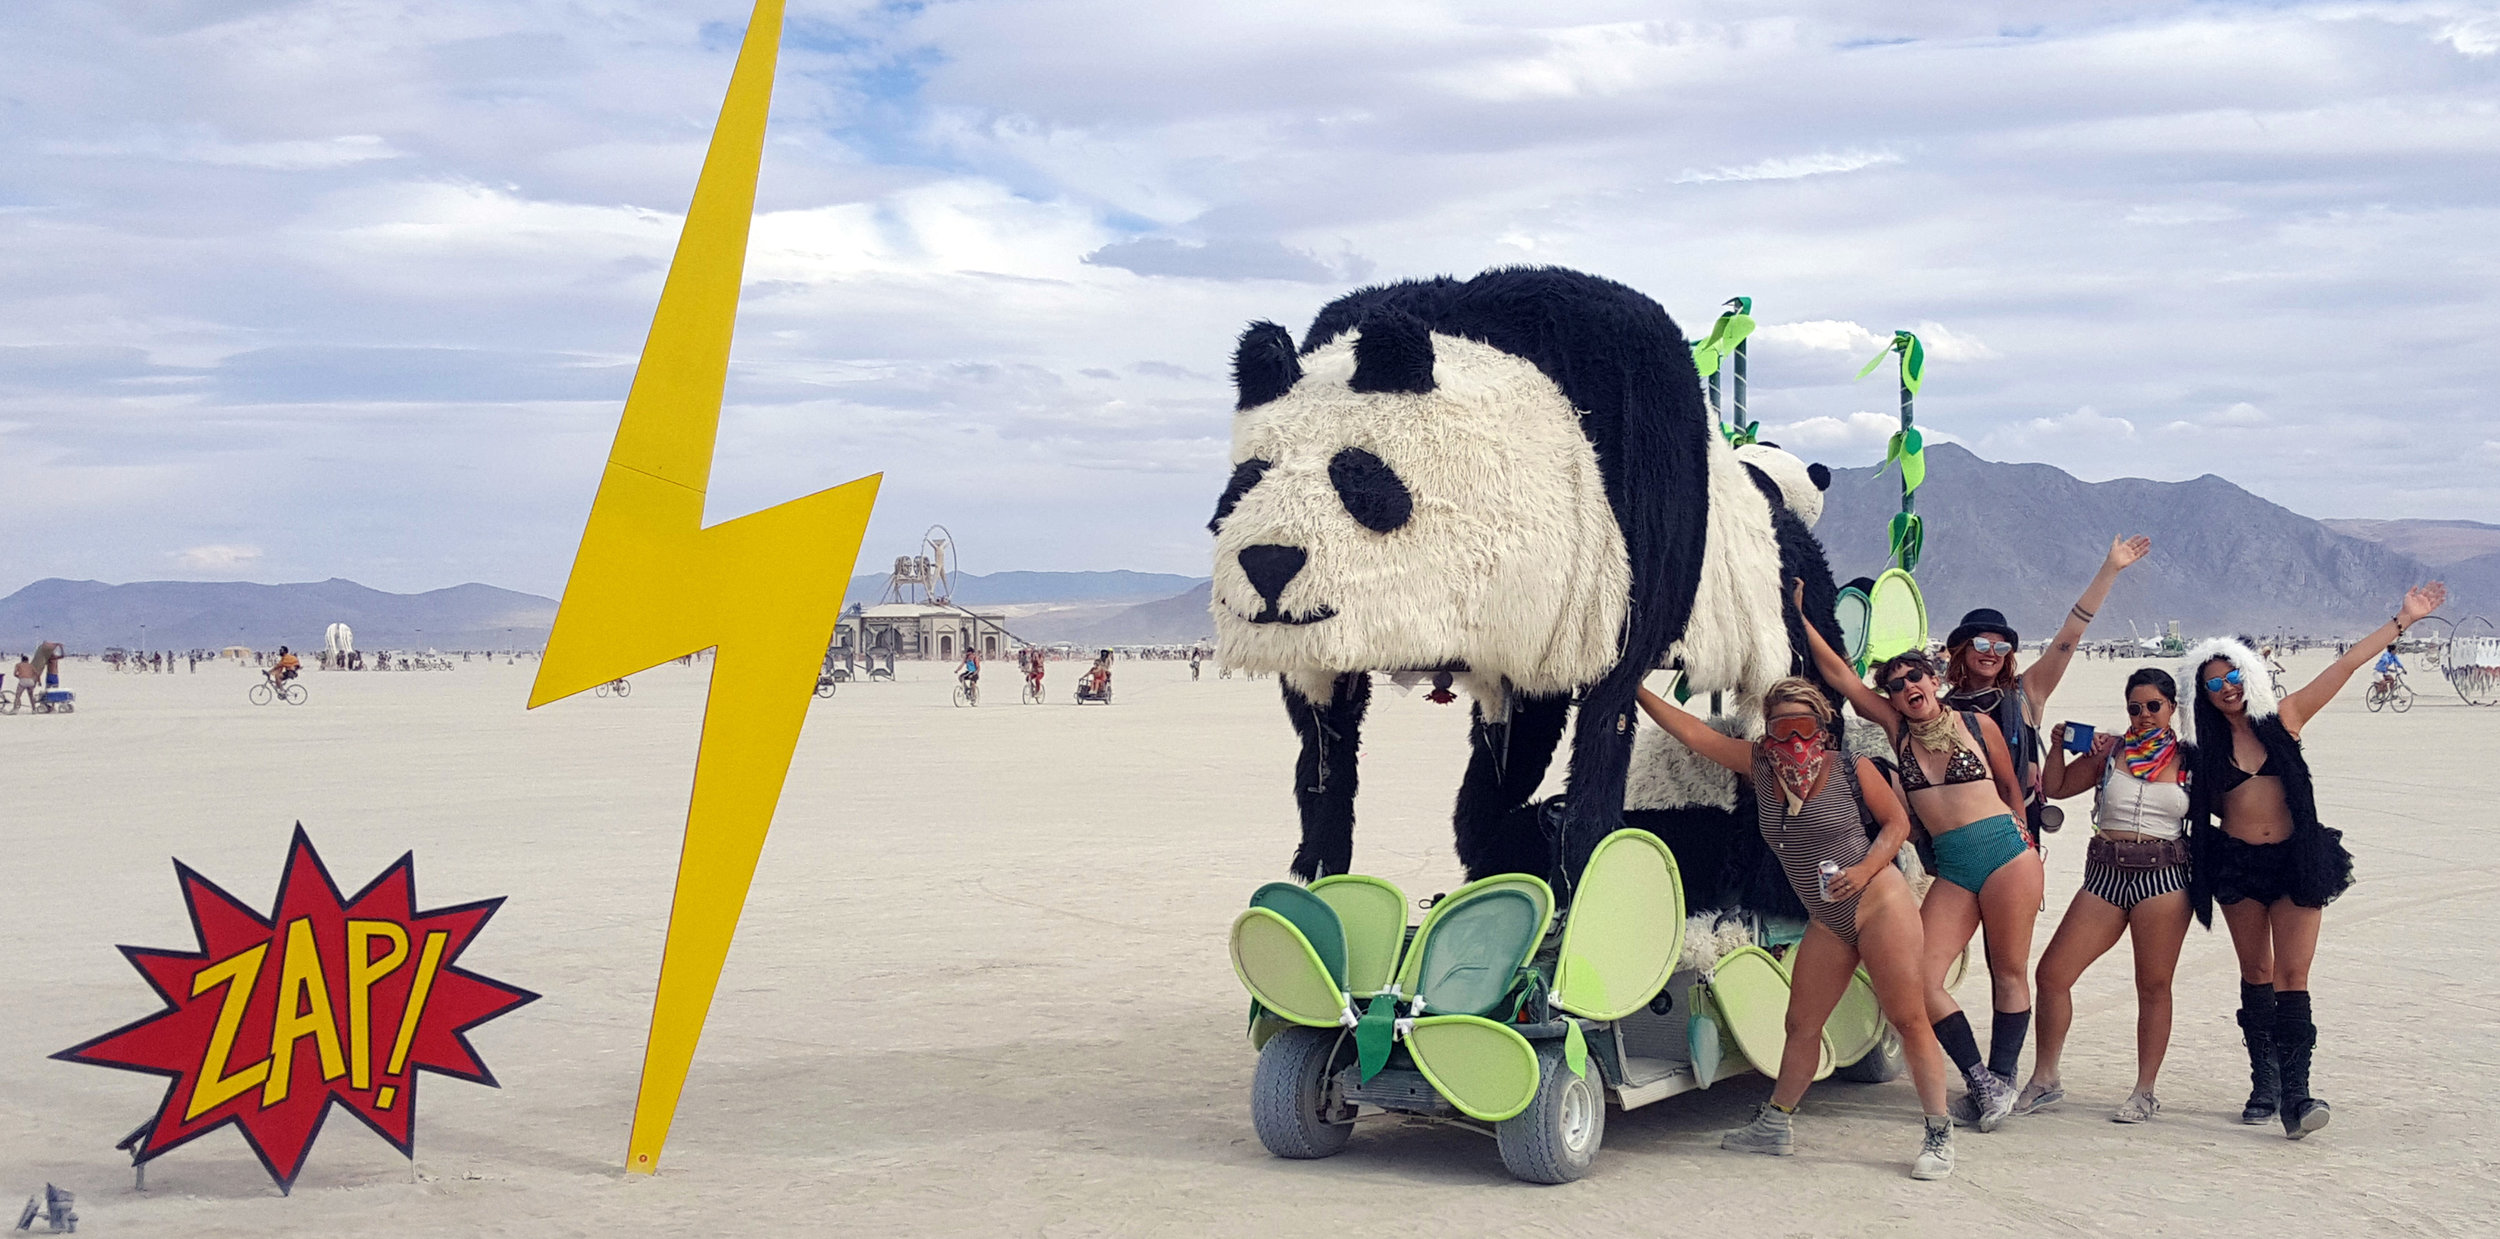 Come find us cruising around the city. We are more than happy to take you for a ride.One of the reasons that we bring Derpy to the playa is that it allows us to interact with so many people. It is amazing to see all of the smiles and joy a big 12 foot panda can bring to people.